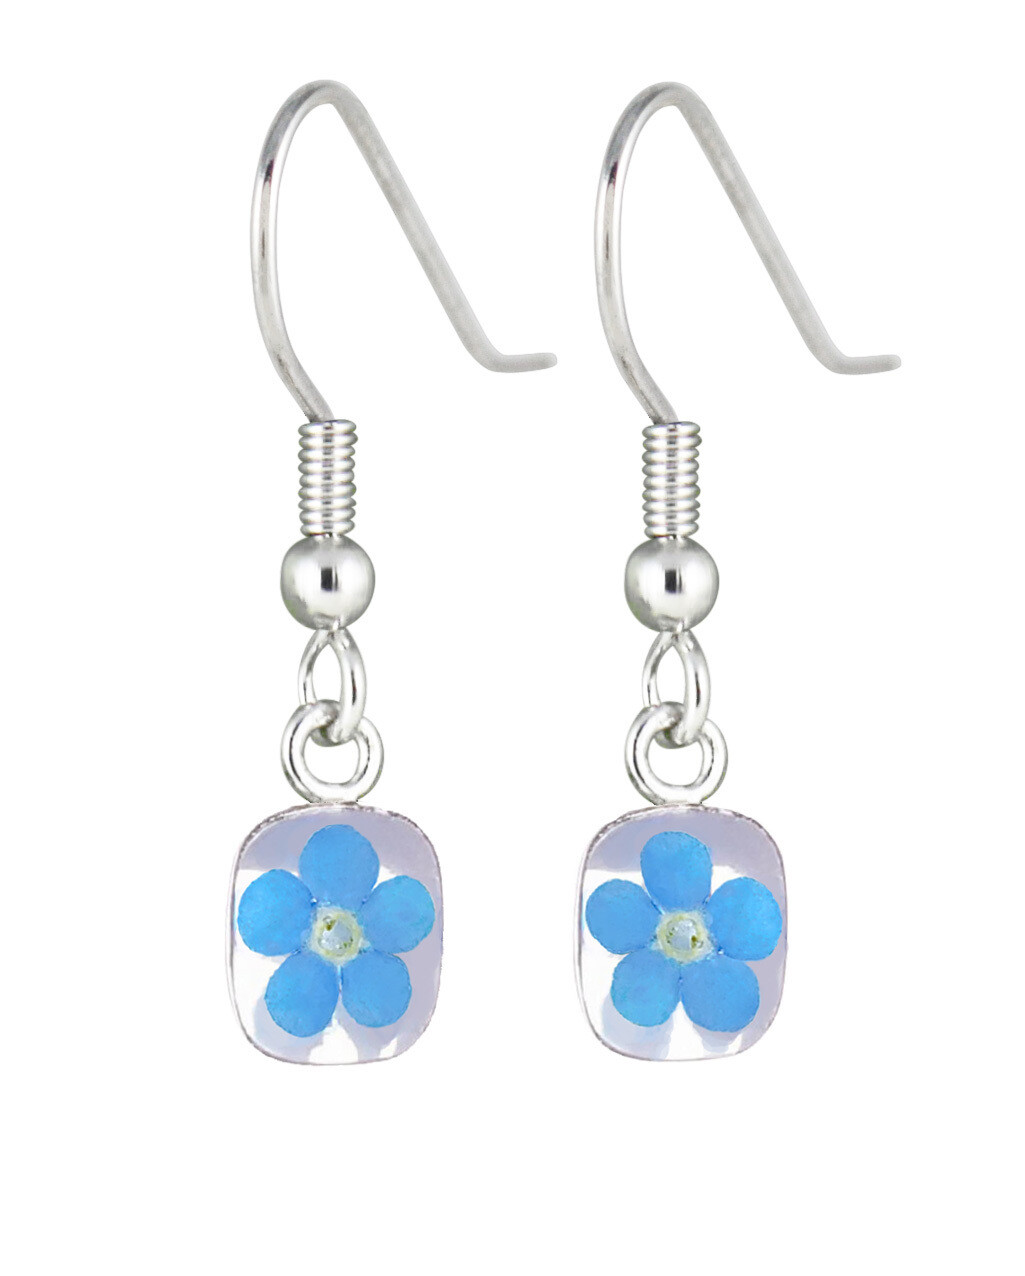 Real Forget-Me-Not Mini Square Earrings, White Background